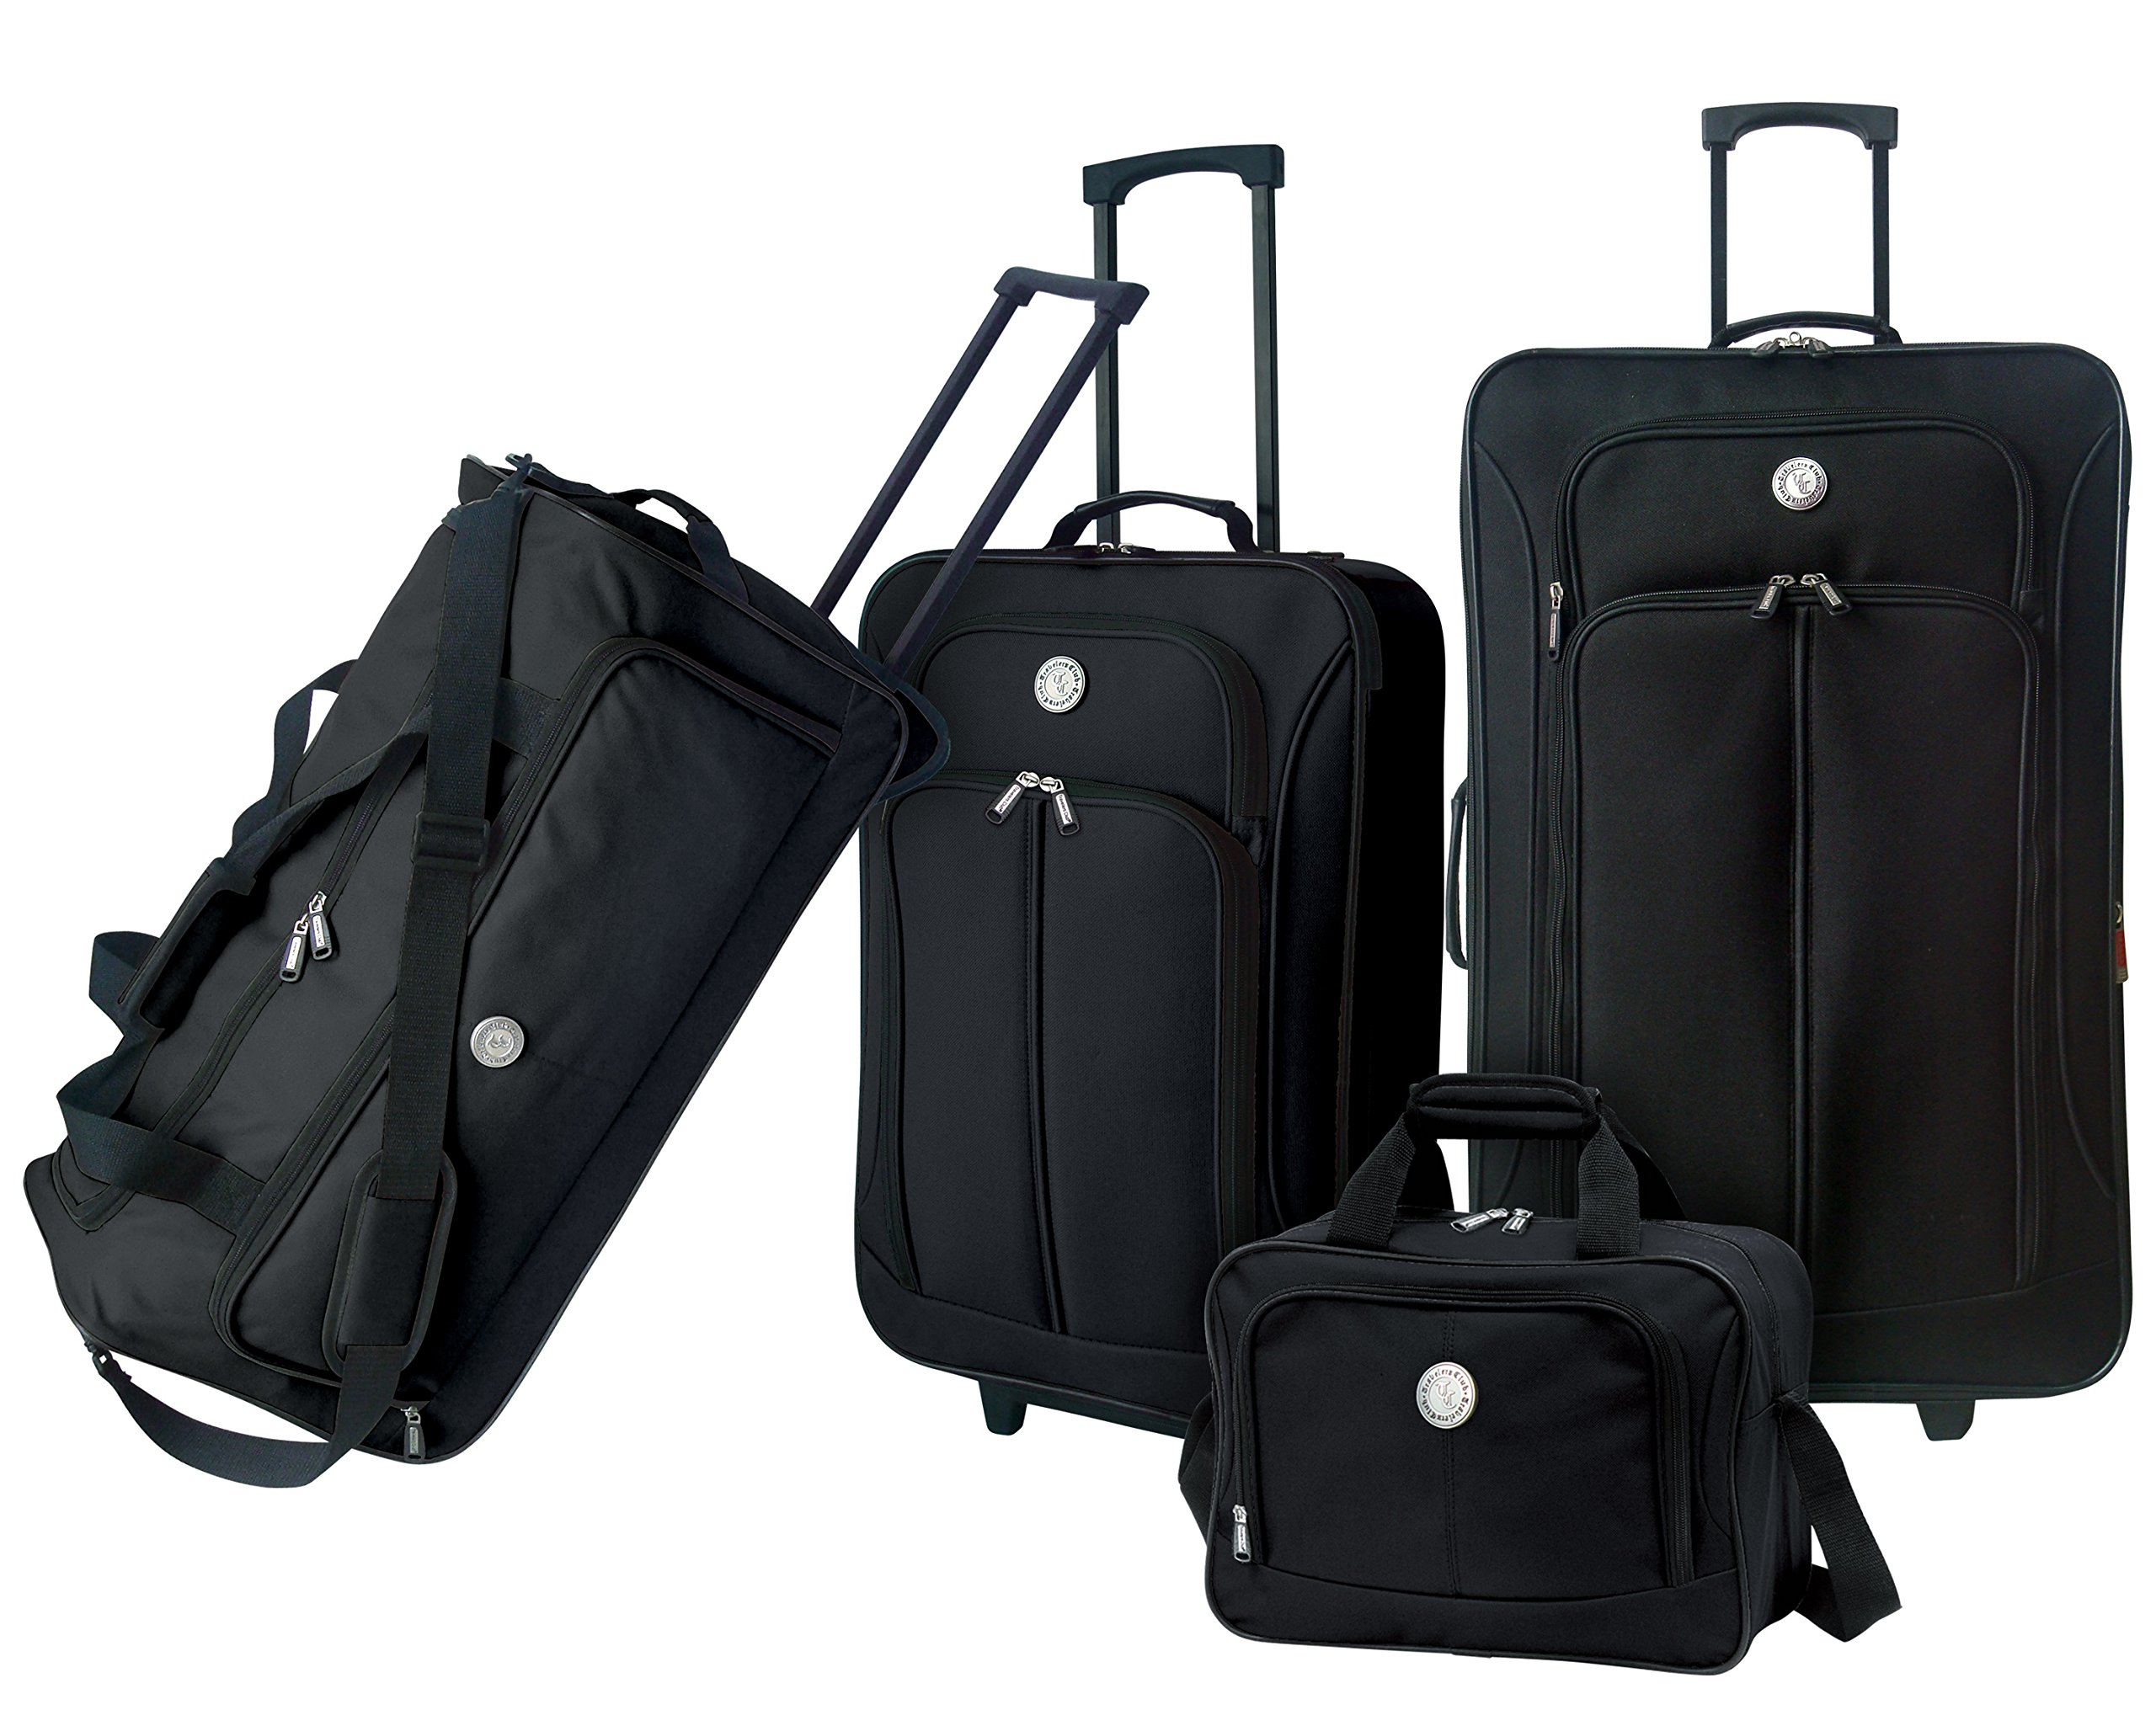 Euro Value II Collection- Deluxe 4 Piece Travel Set in Black